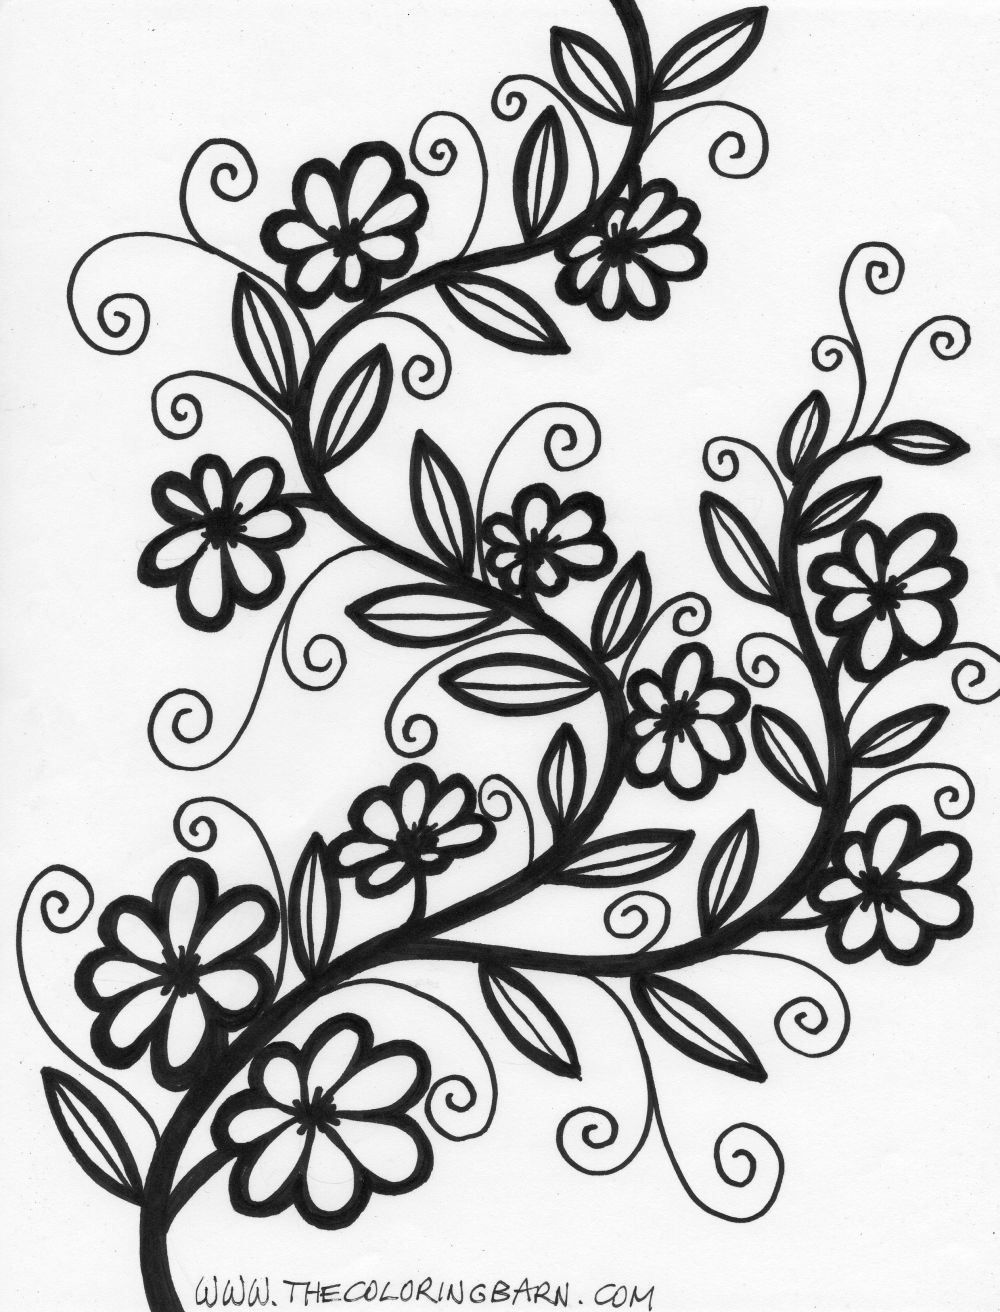 Flower design coloring pages - Flower Coloring Pages